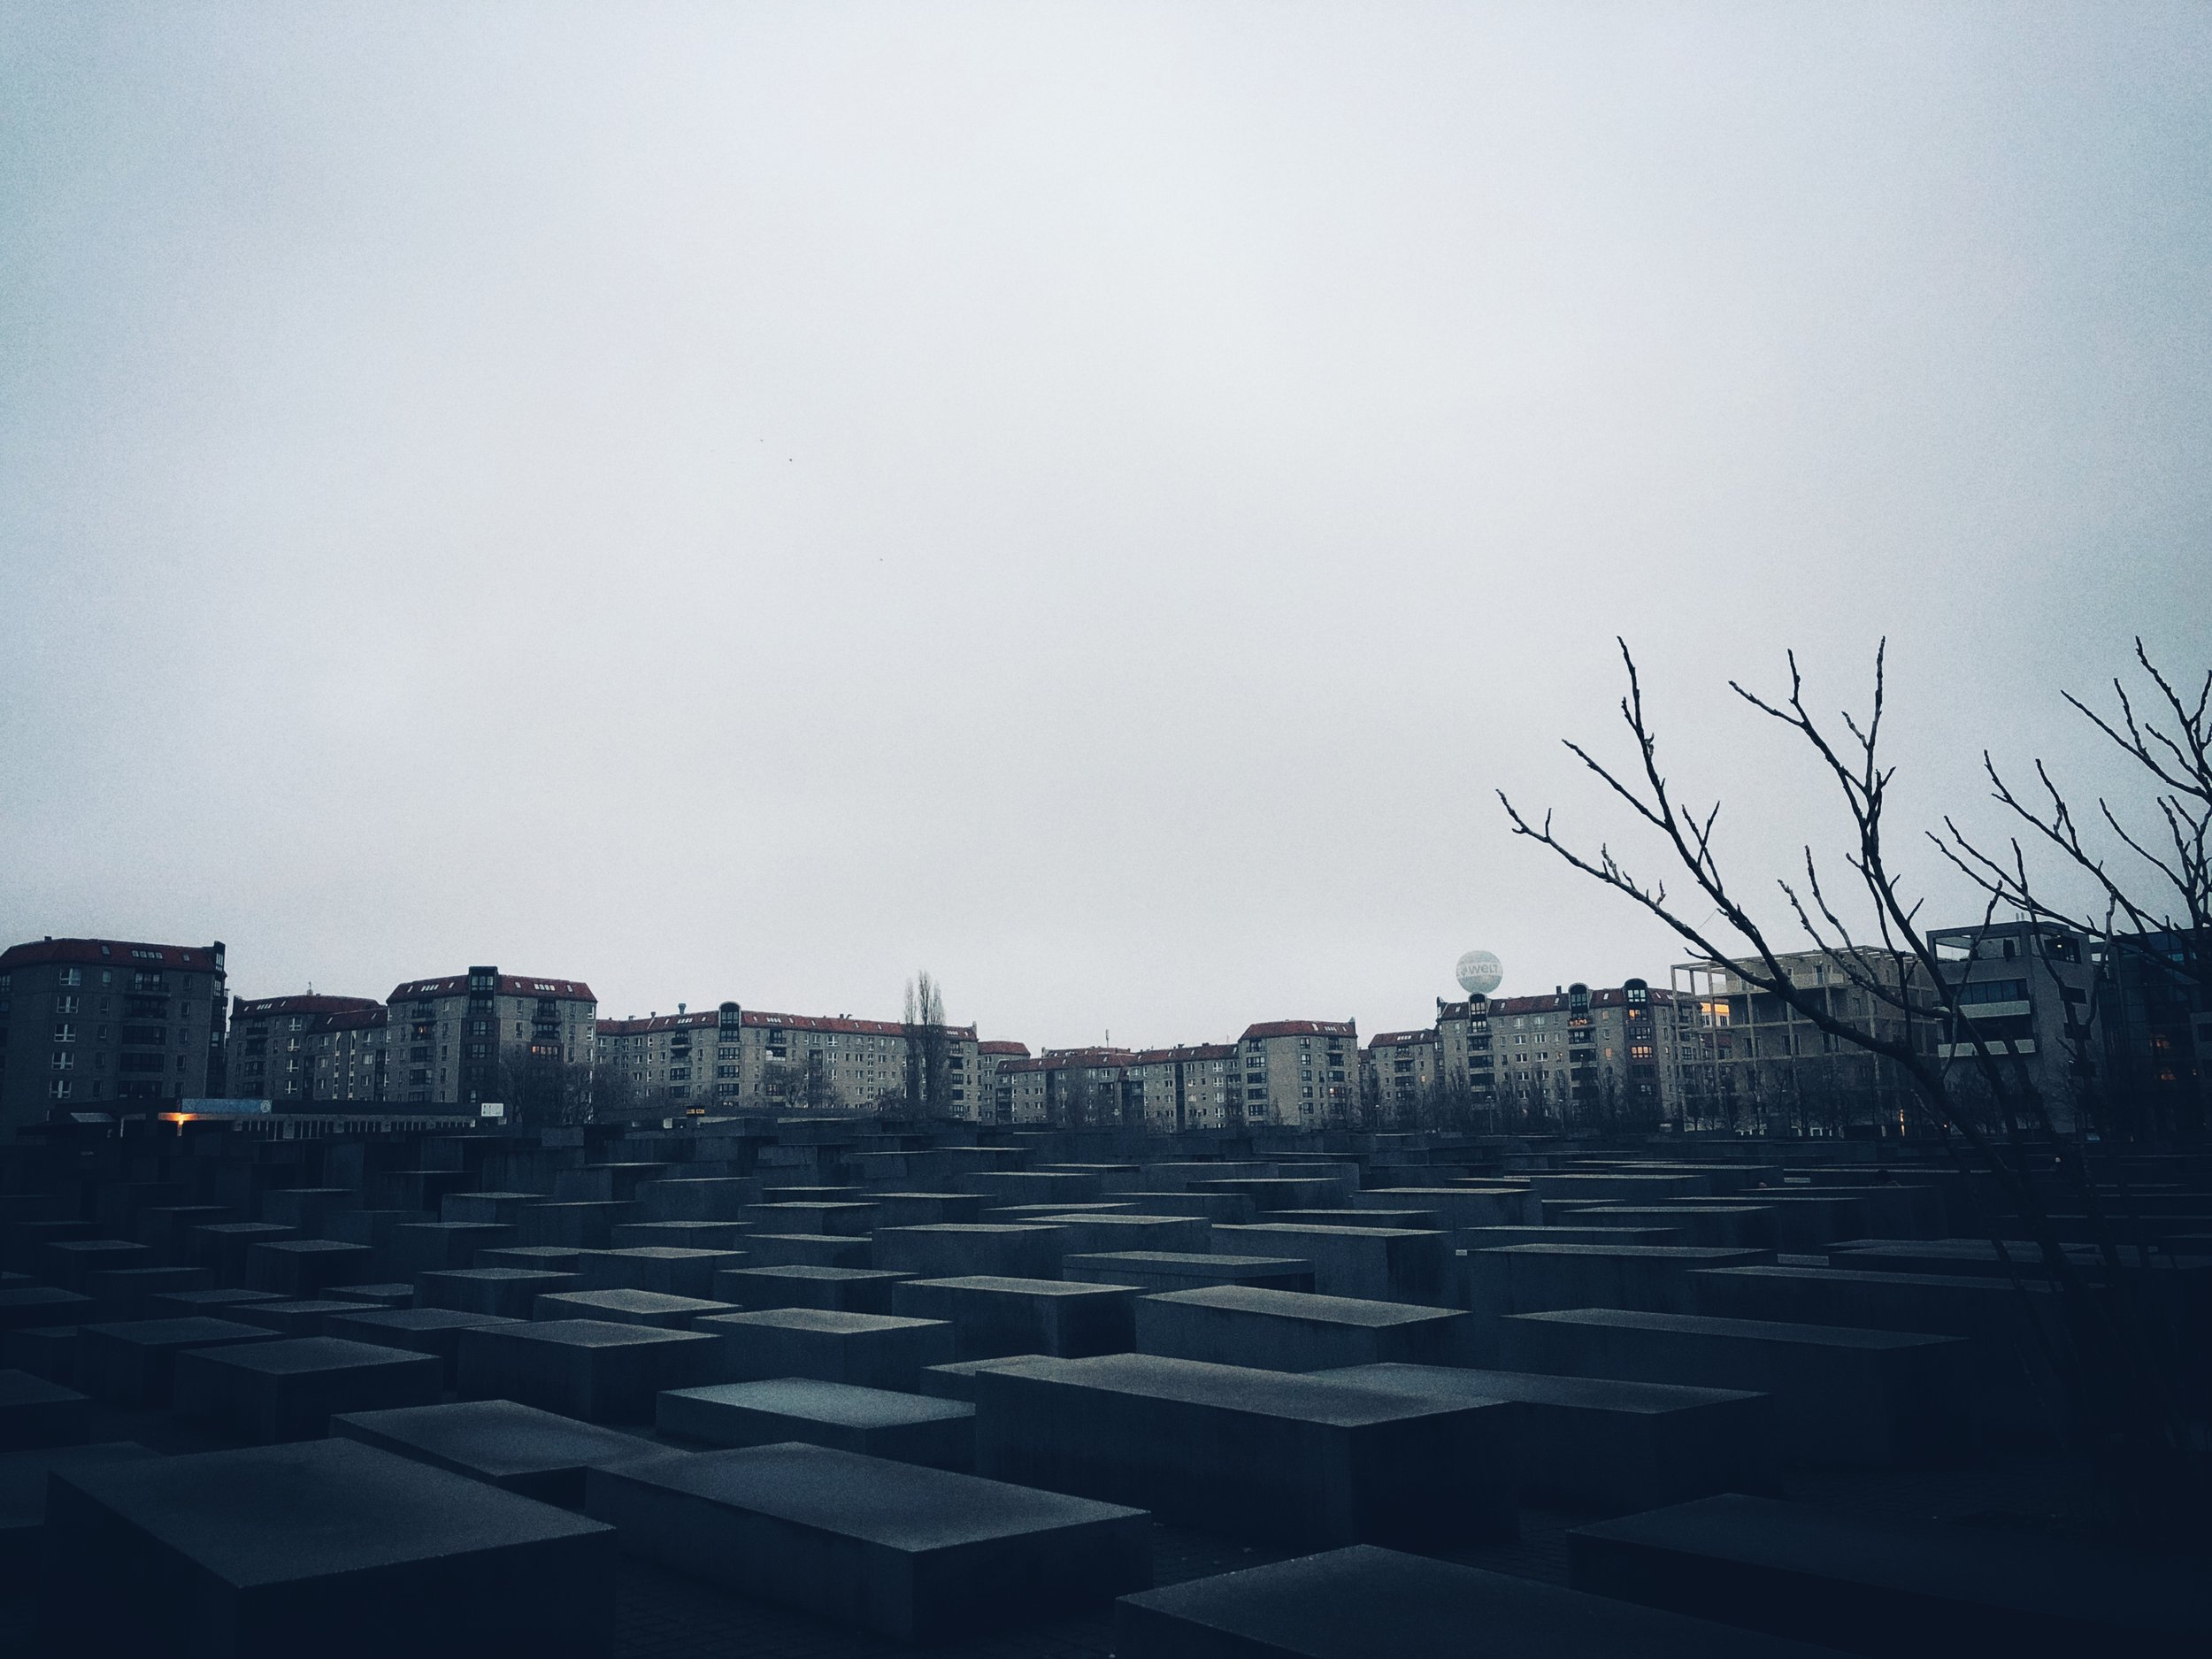 view of former bunker site from the memorial to the murdered jews of europe